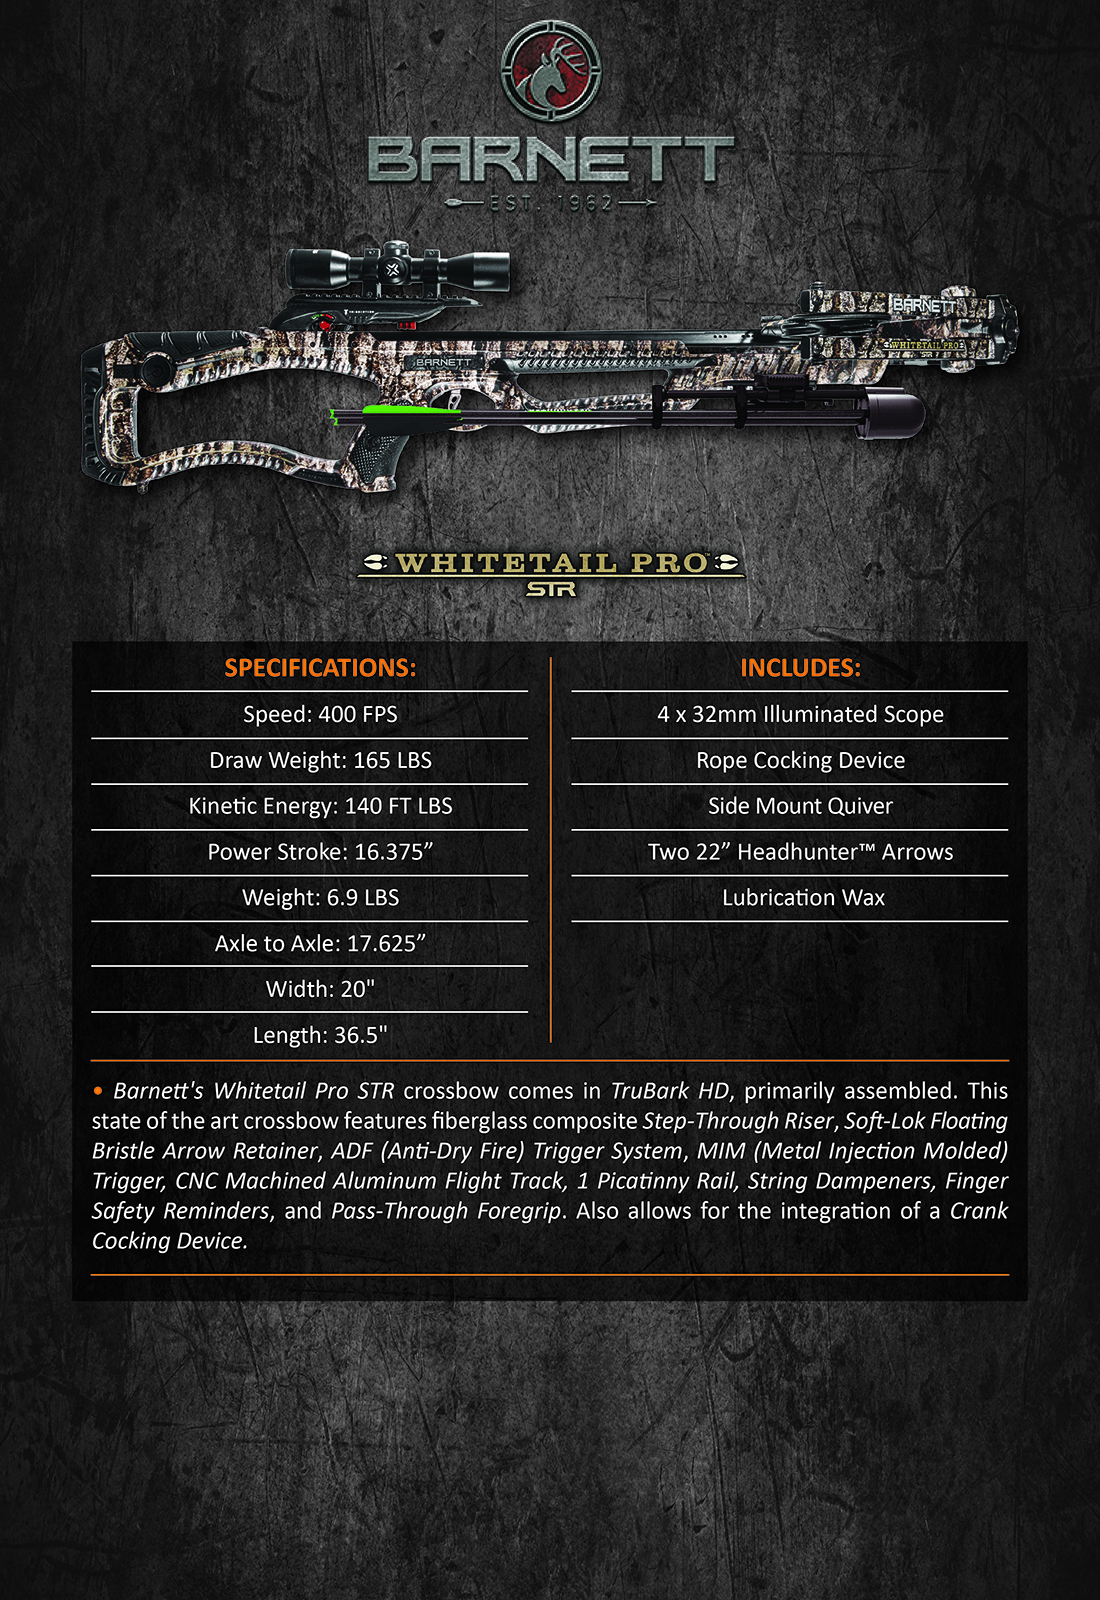 Barnett_Whitetail_Pro_STR_Product_Description